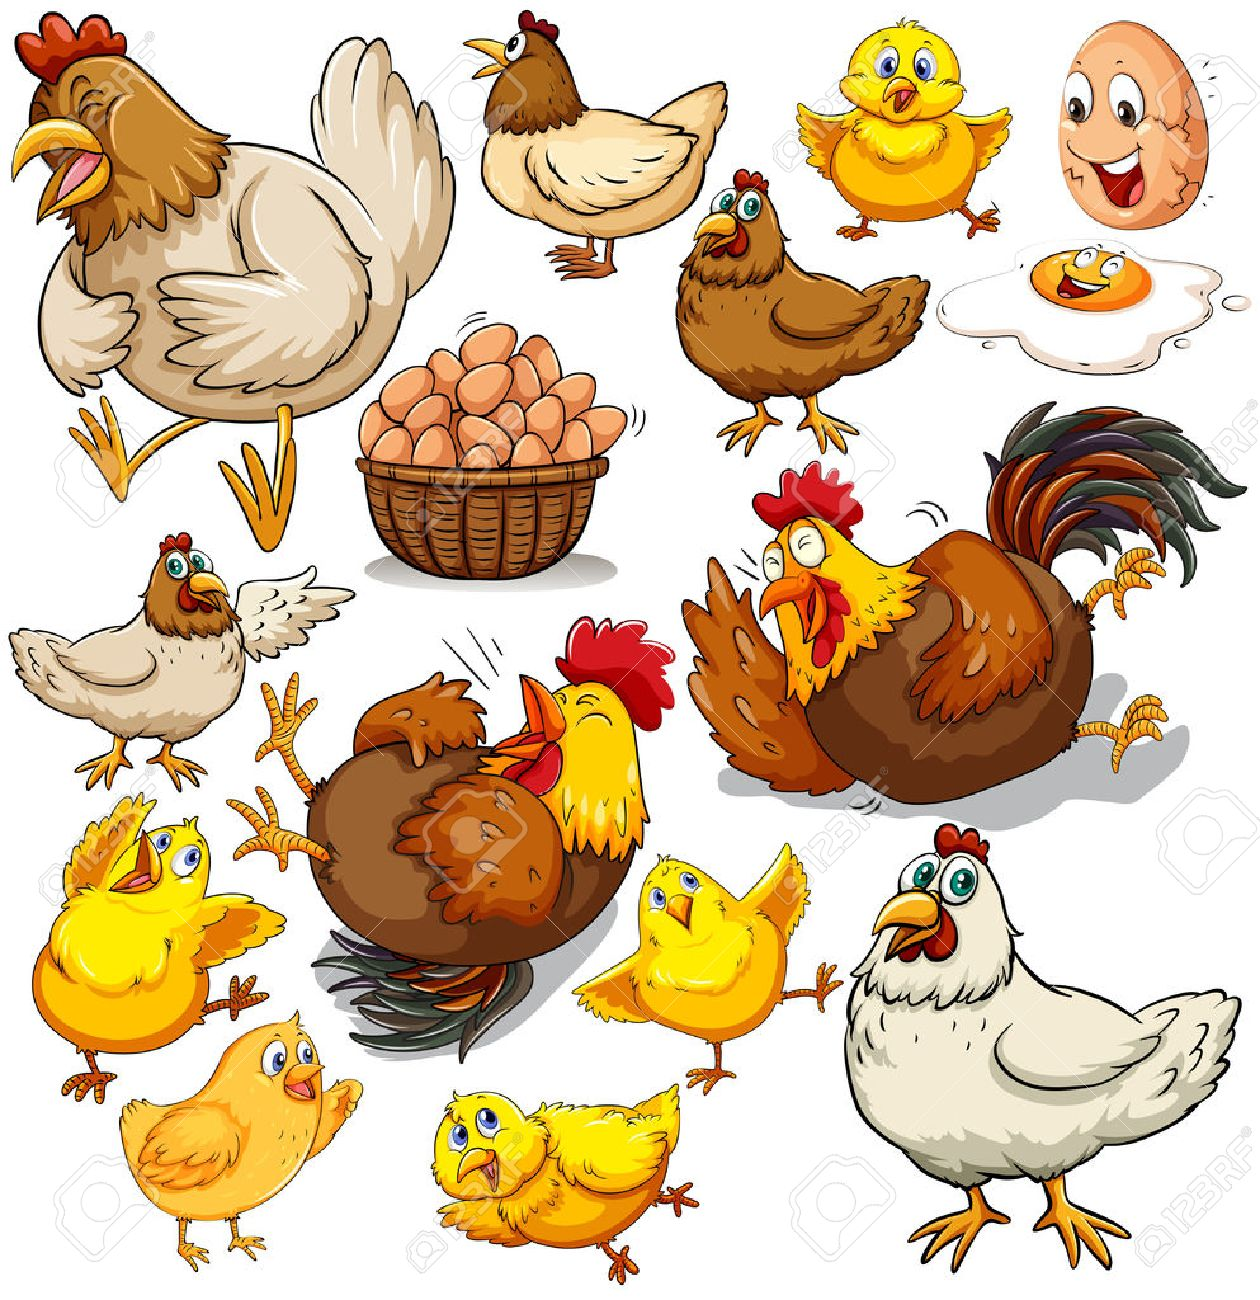 Animals Clipart Stock Photos Images. Royalty Free Animals Clipart ...